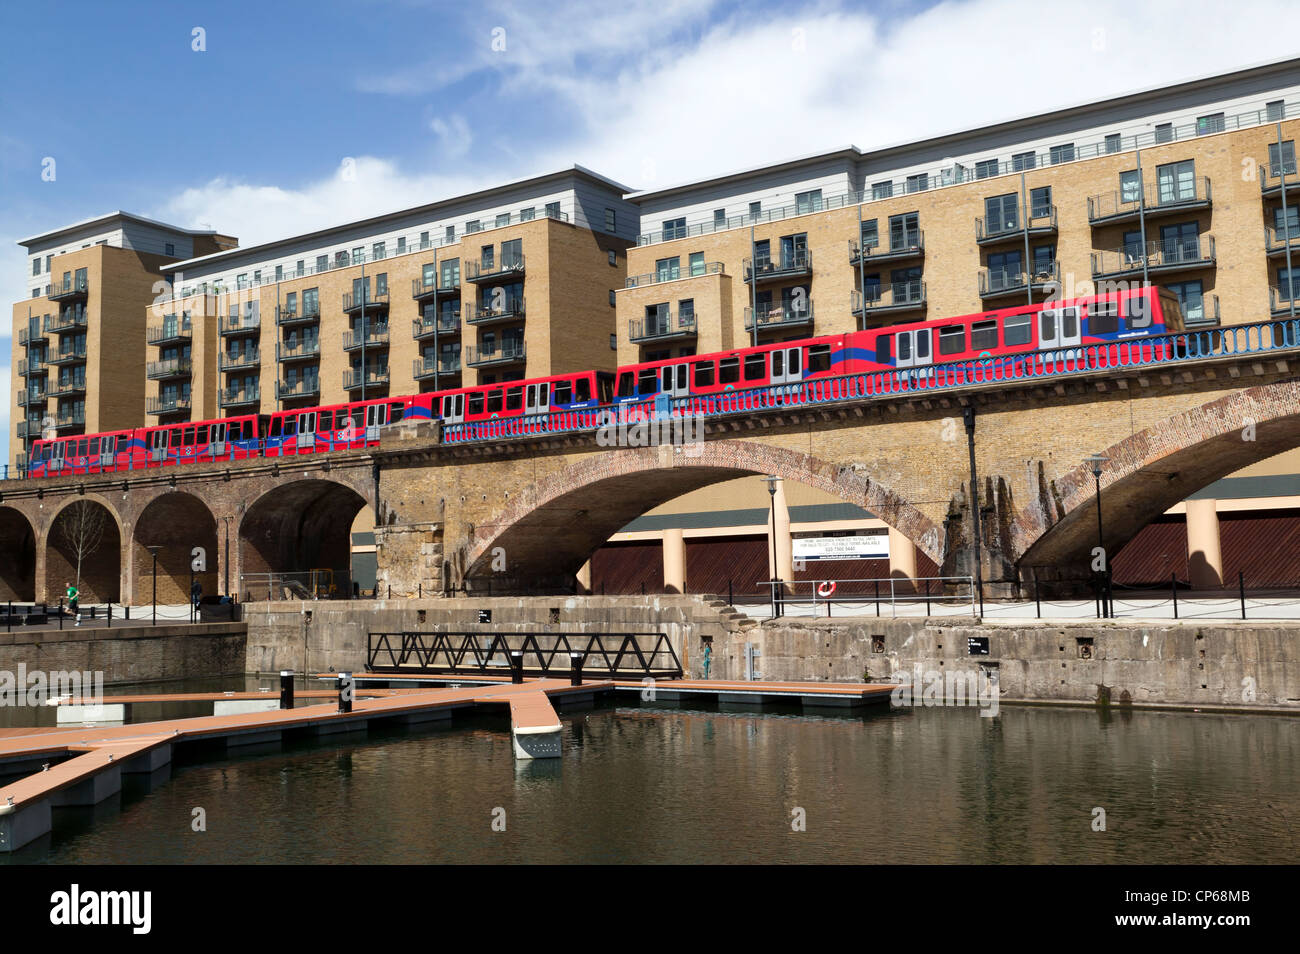 Brick viaduct carrying the Docklands Light Railway, at the Limehouse Basin, Tower Hamlets, London. - Stock Image